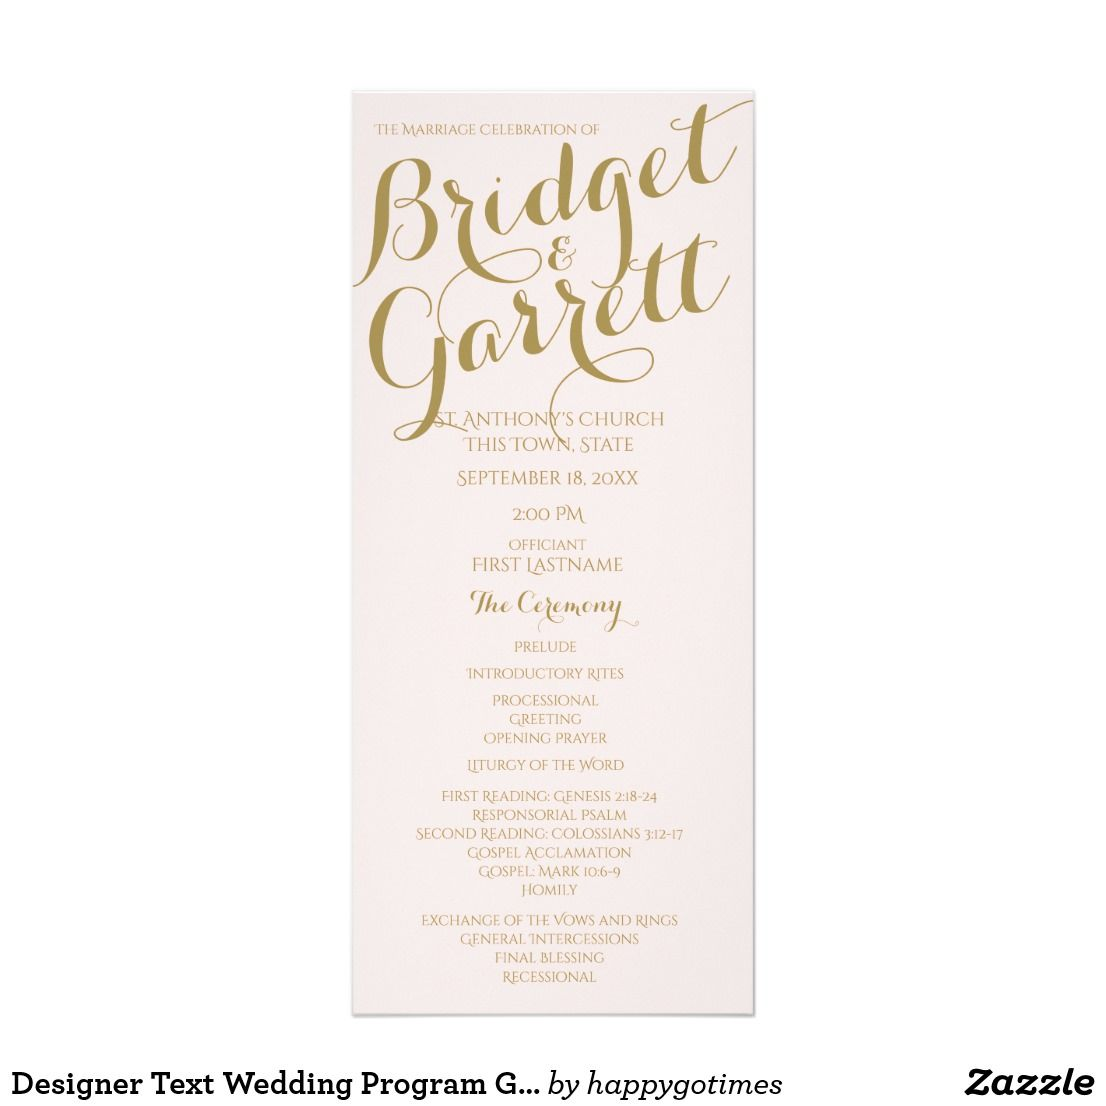 designer text wedding program gold wedding programs pinterest